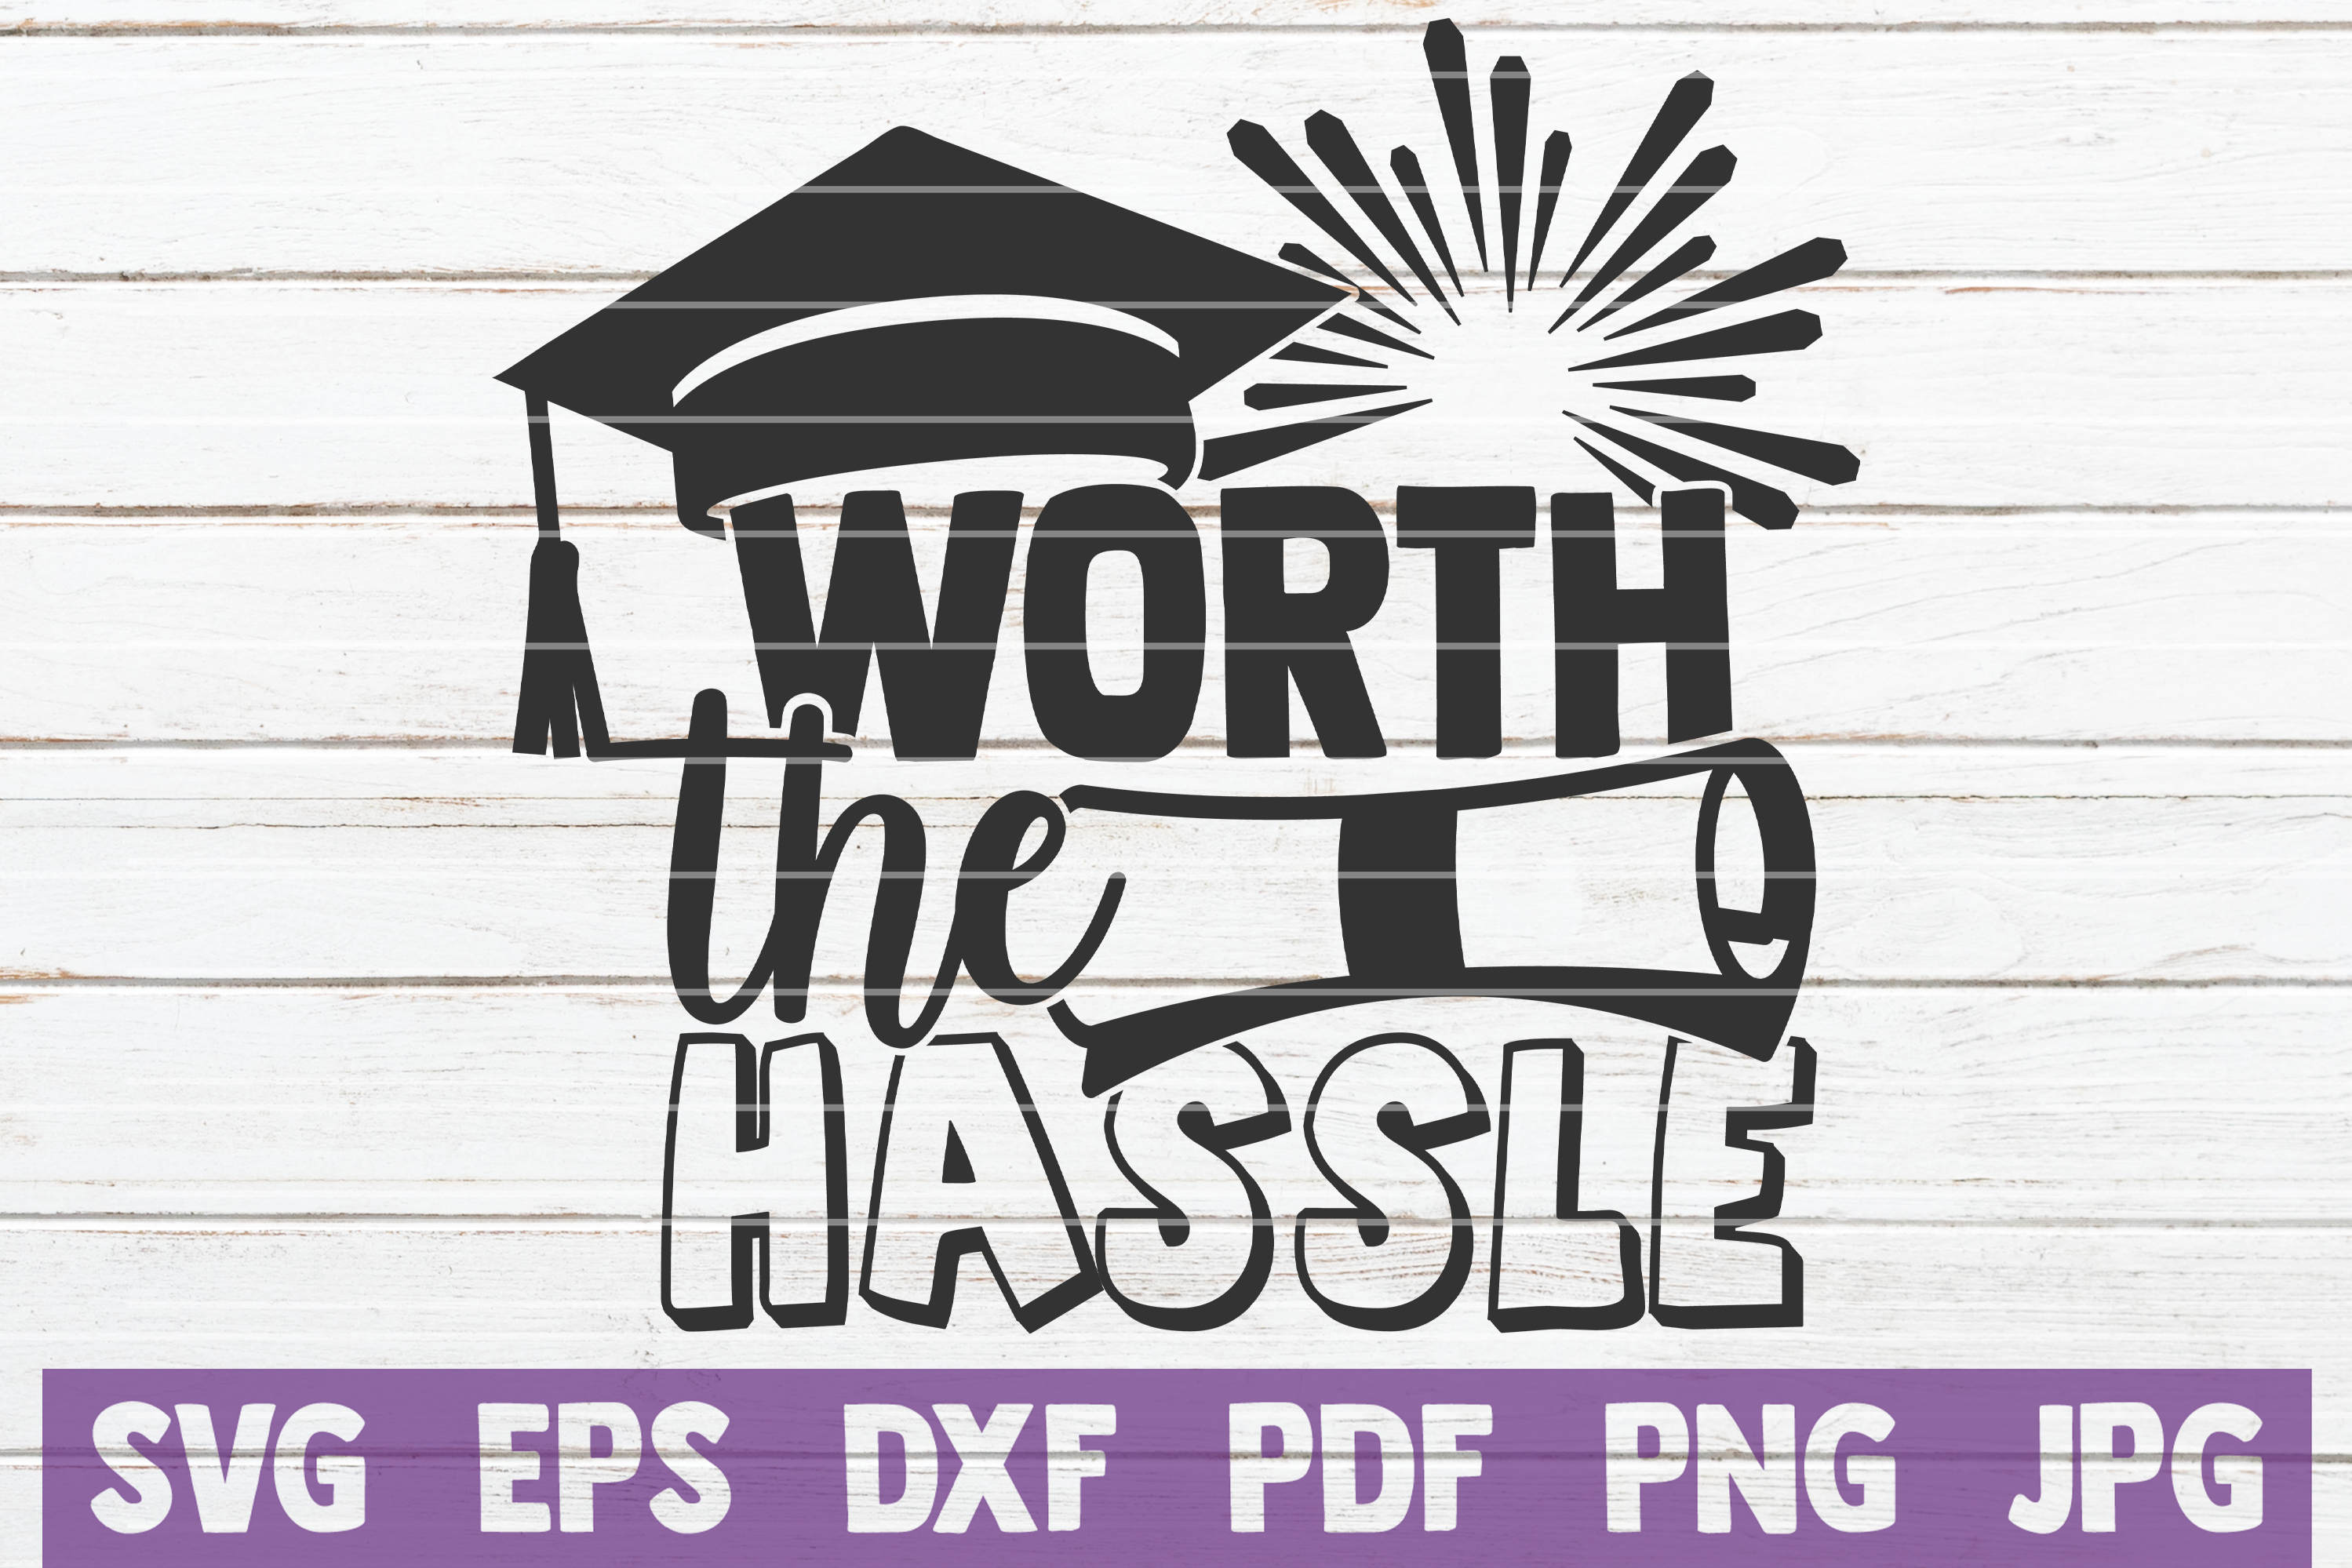 Download Free Worth The Hassle Graphic By Mintymarshmallows Creative Fabrica for Cricut Explore, Silhouette and other cutting machines.